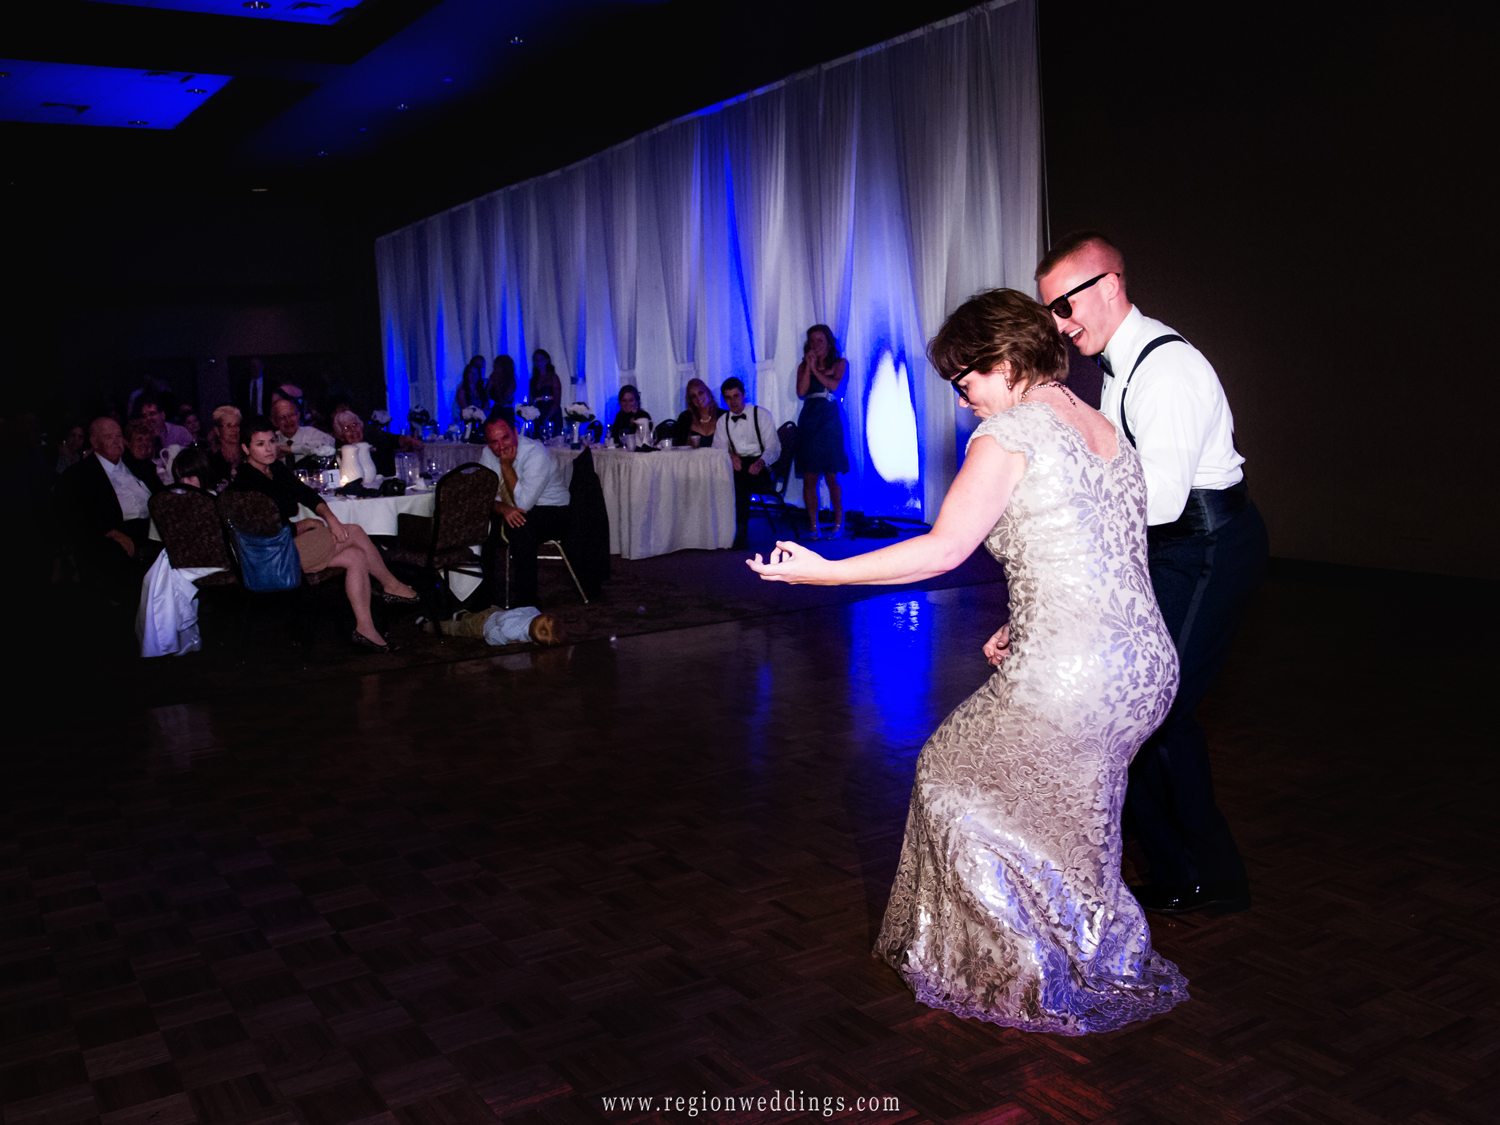 The groom and his mom play air guitar on the dance floor during his wedding reception.